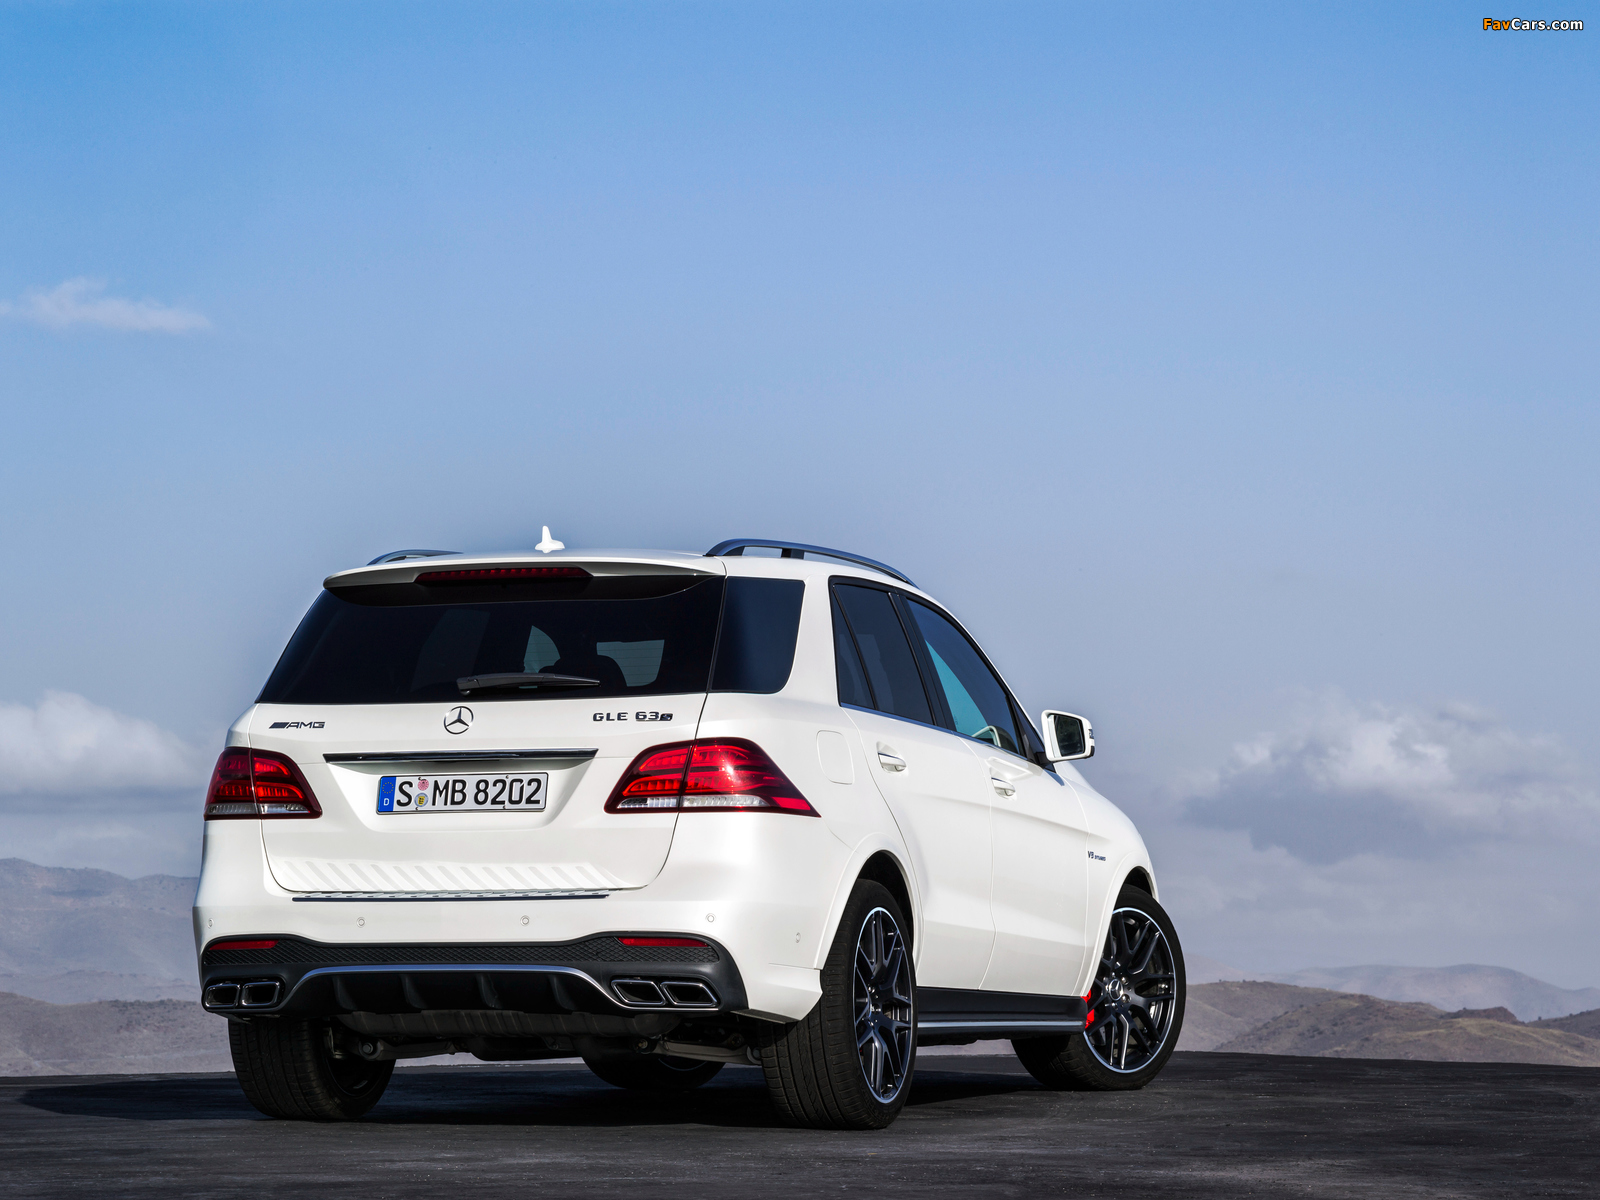 Mercedes-AMG GLE 63 S 4MATIC (W166) 2015 images (1600 x 1200)